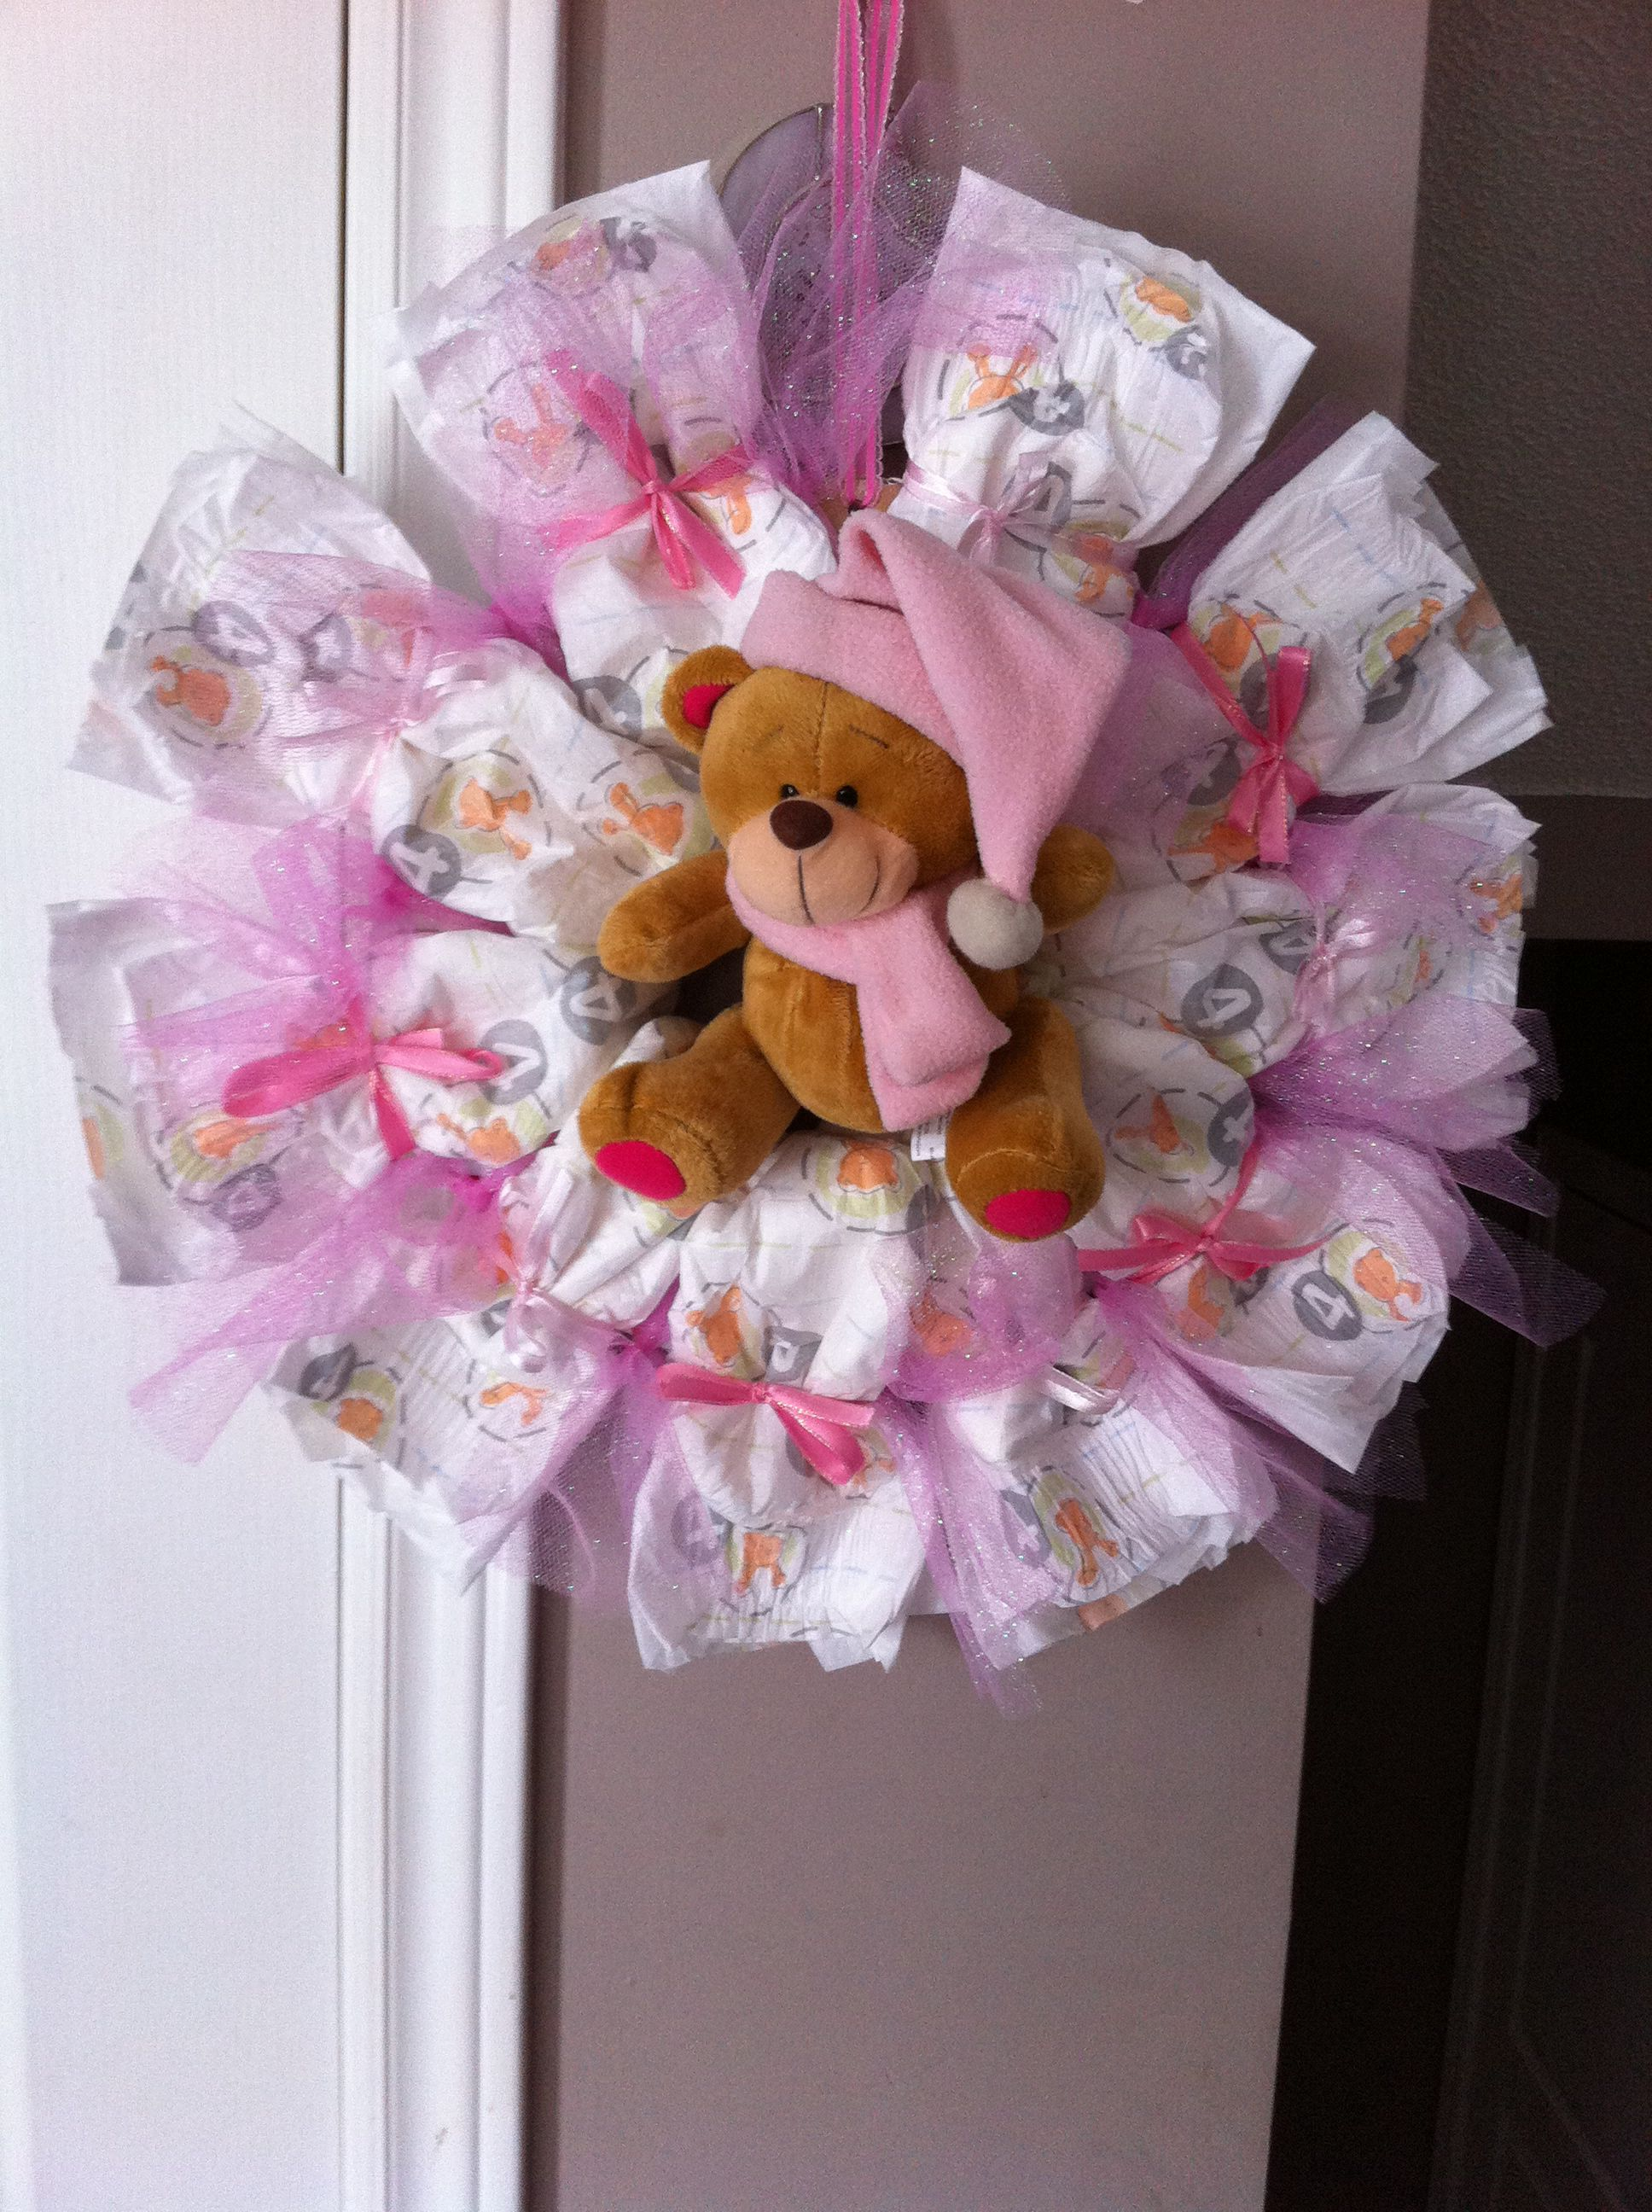 Diaper wreath. Comes with 10-20 diapers depending on size of diaper, stuffed animal or initial in the middle, ribbon.  Order one today! Text 705-716-8741 or email me at t.denardis@hotmail.ca *Choose from pink, blue, or yellow/green. *Choose your diaper size (pull-ups can be used but raises the cost).  *can be shipped within Ontario or FREE pick up in the southern part of Barrie.  PLEASE NOTE: patterns and brands are subject to change.